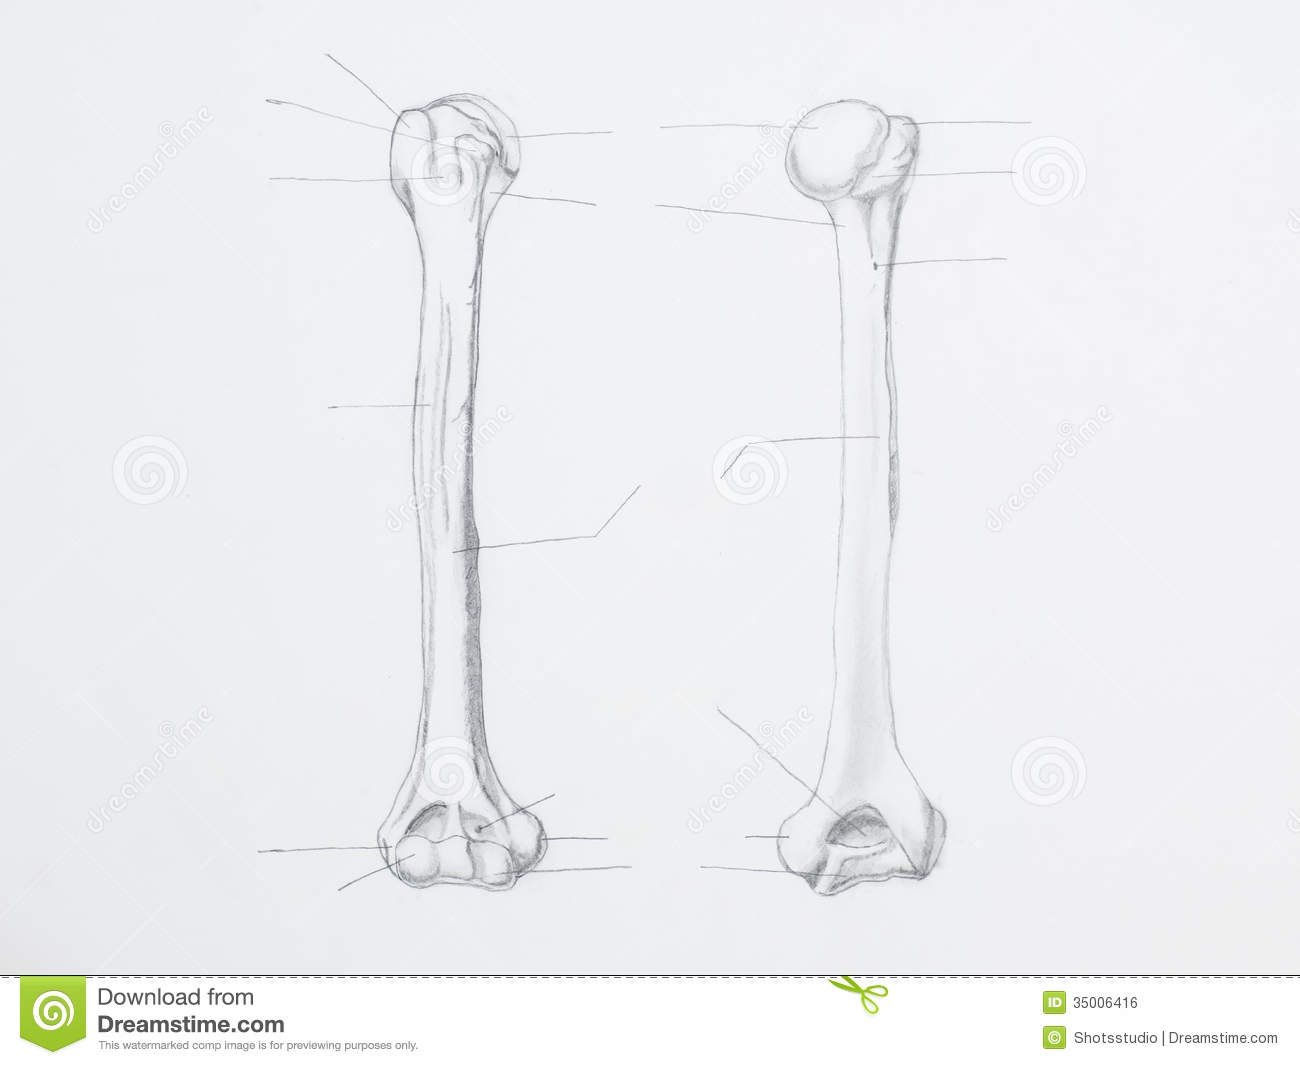 Humerus Pencil Drawing Royalty Free Stock Image - Image: 35006416